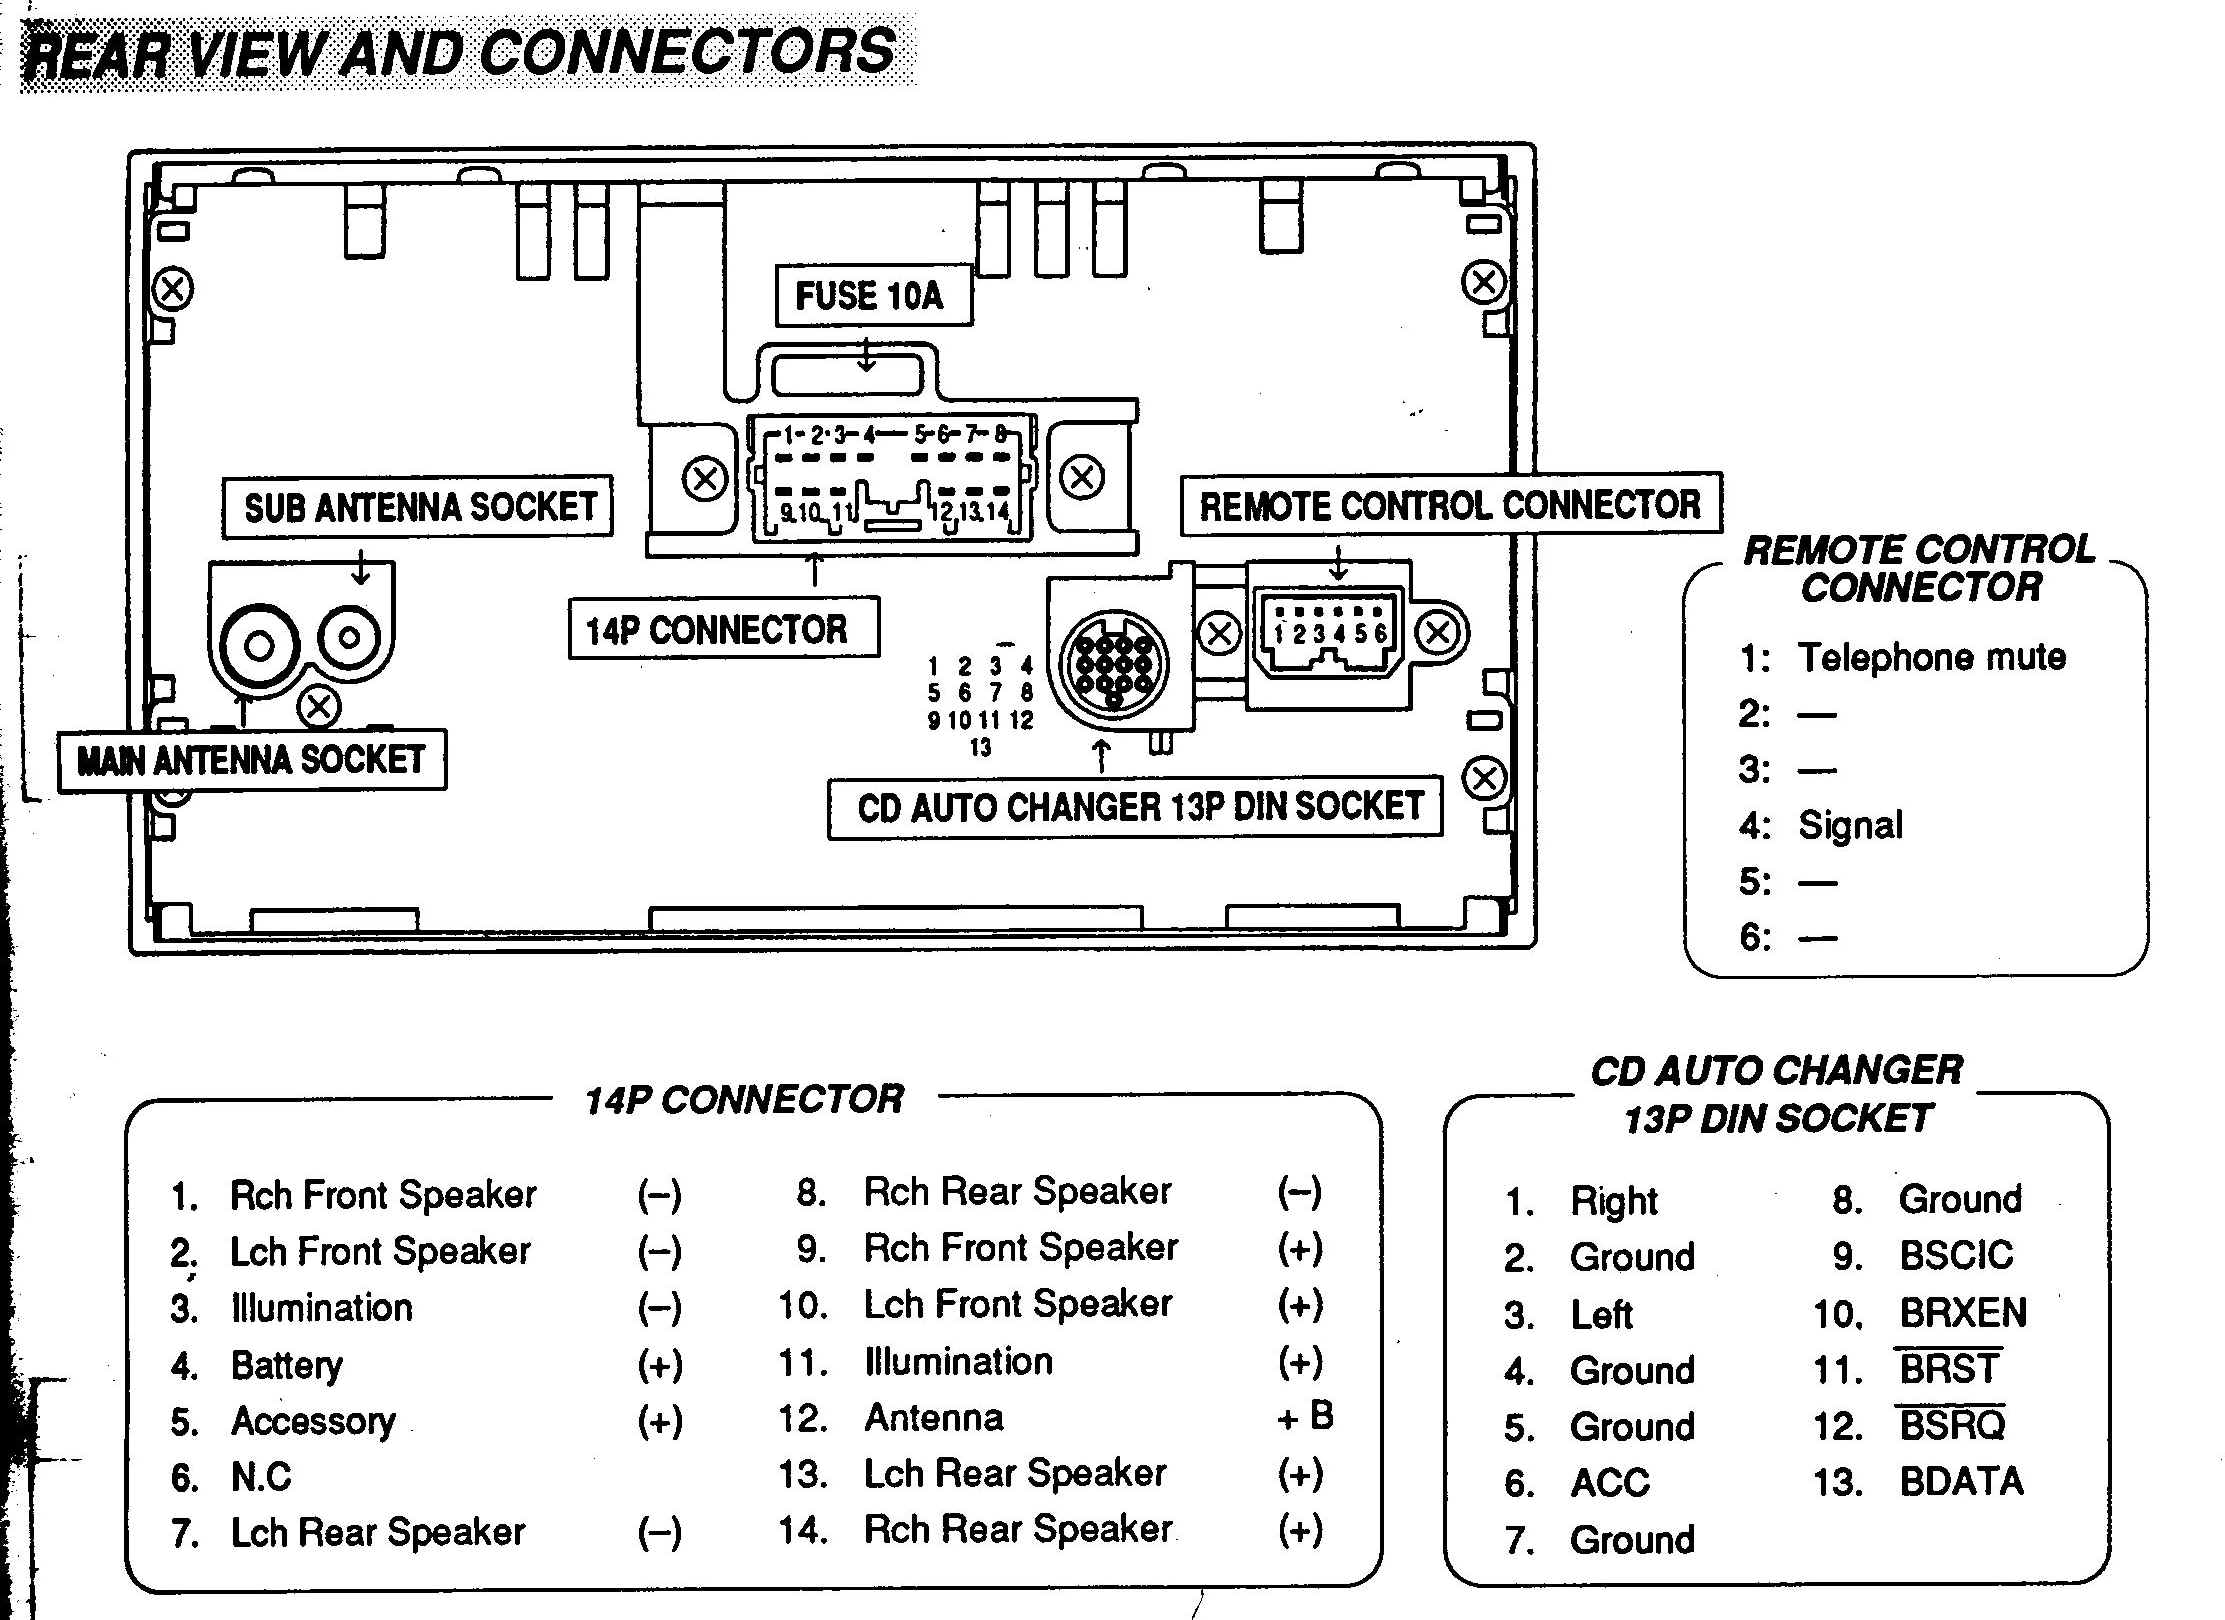 Mitsubishi Car Audio Wiring Diagram : Car audio wire diagram codes mitsubishi factory